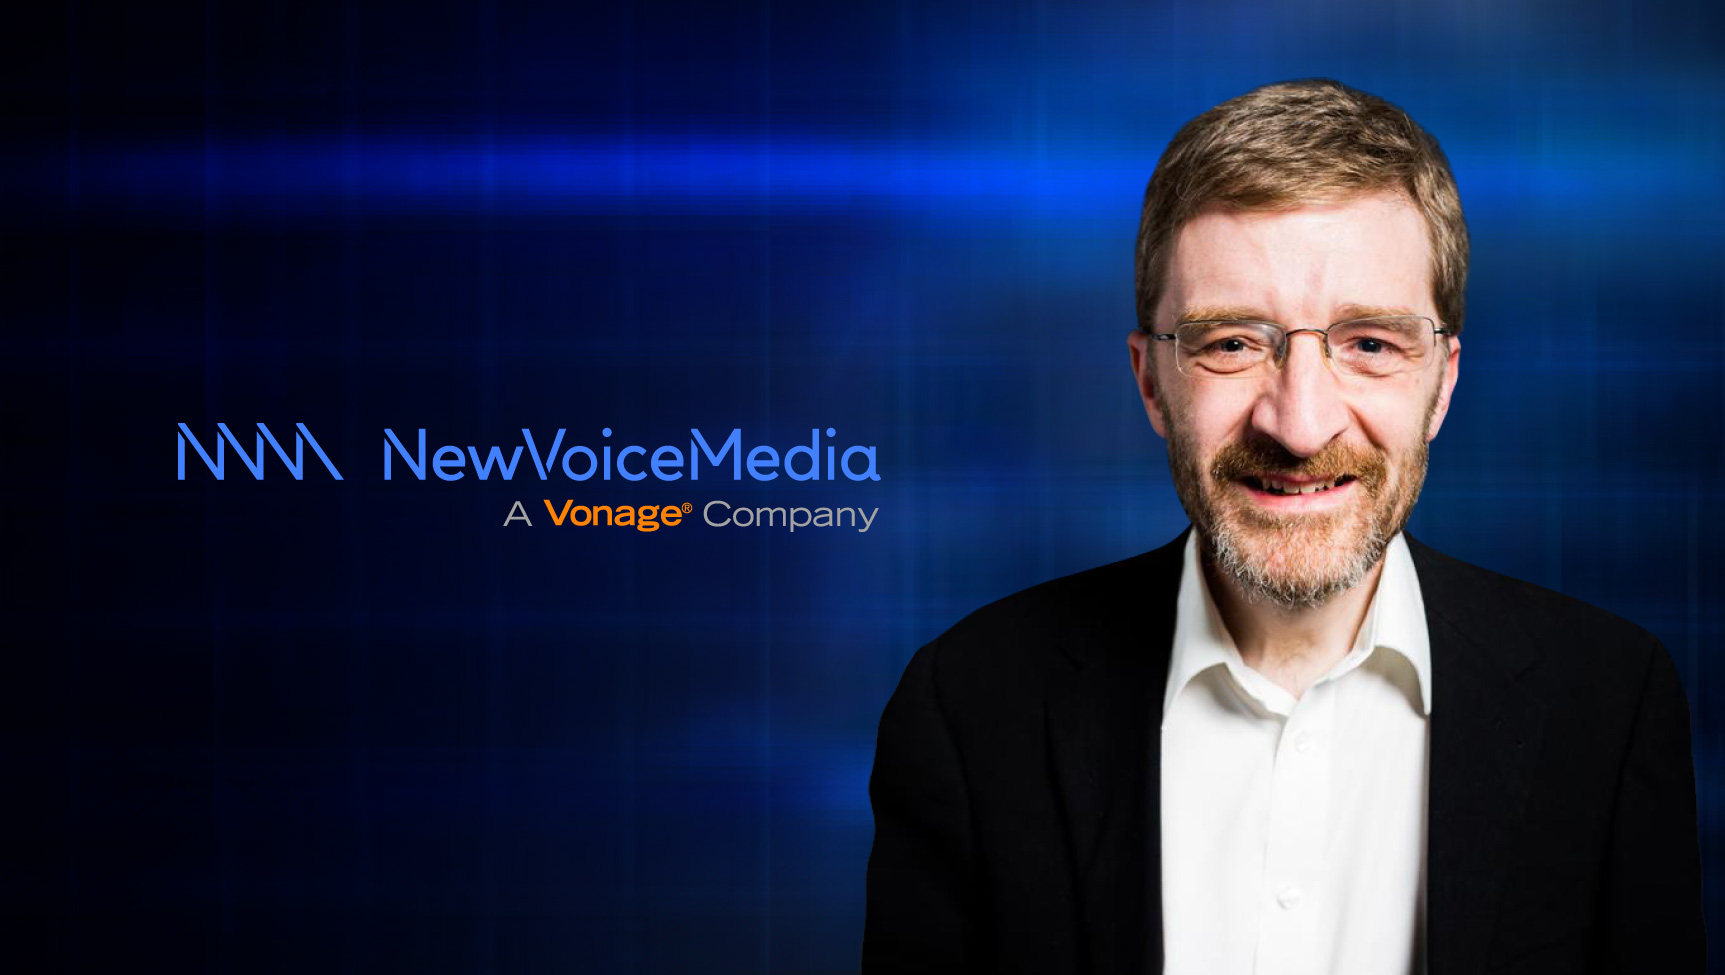 SalesTech Interview with Ashley Unitt, Chief Scientist and Co-Founder at NewVoiceMedia